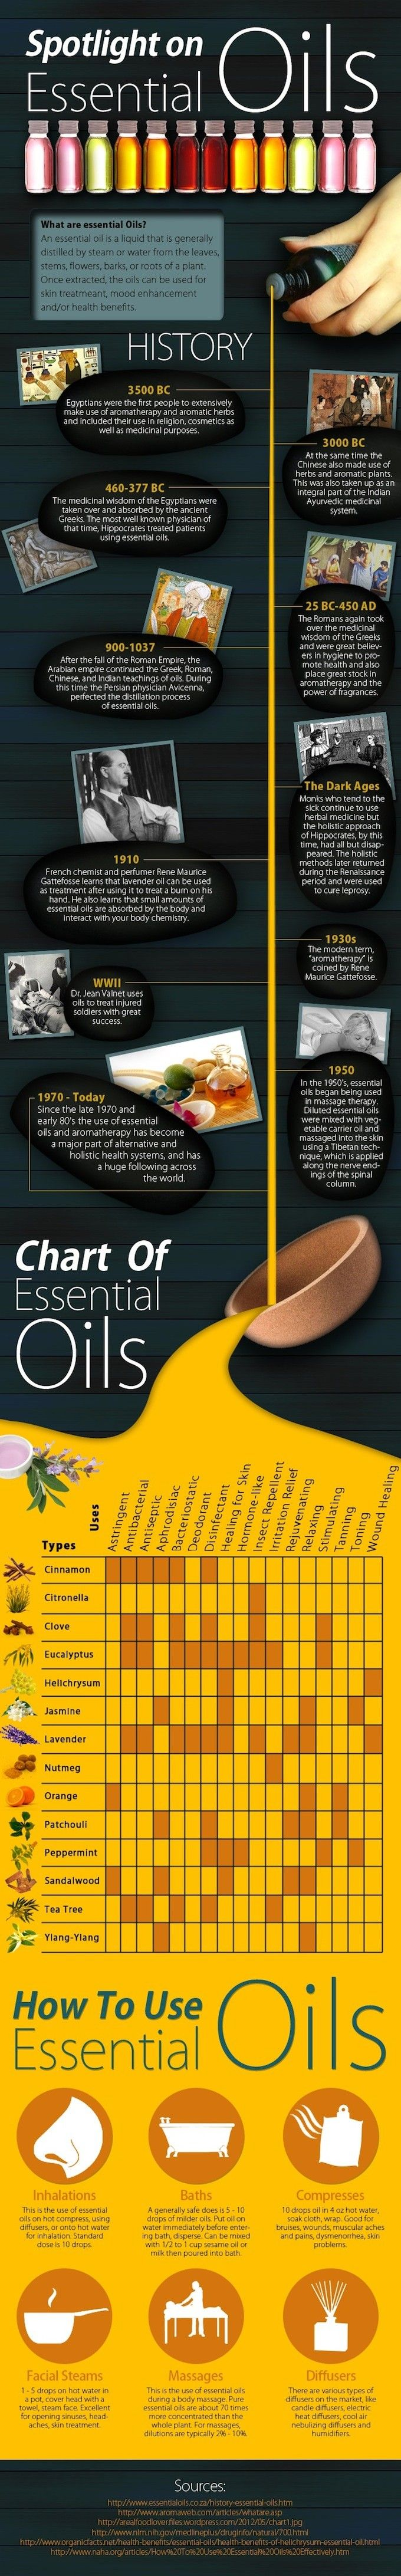 Essential Oils: Everything You Need To Know (Infographic)